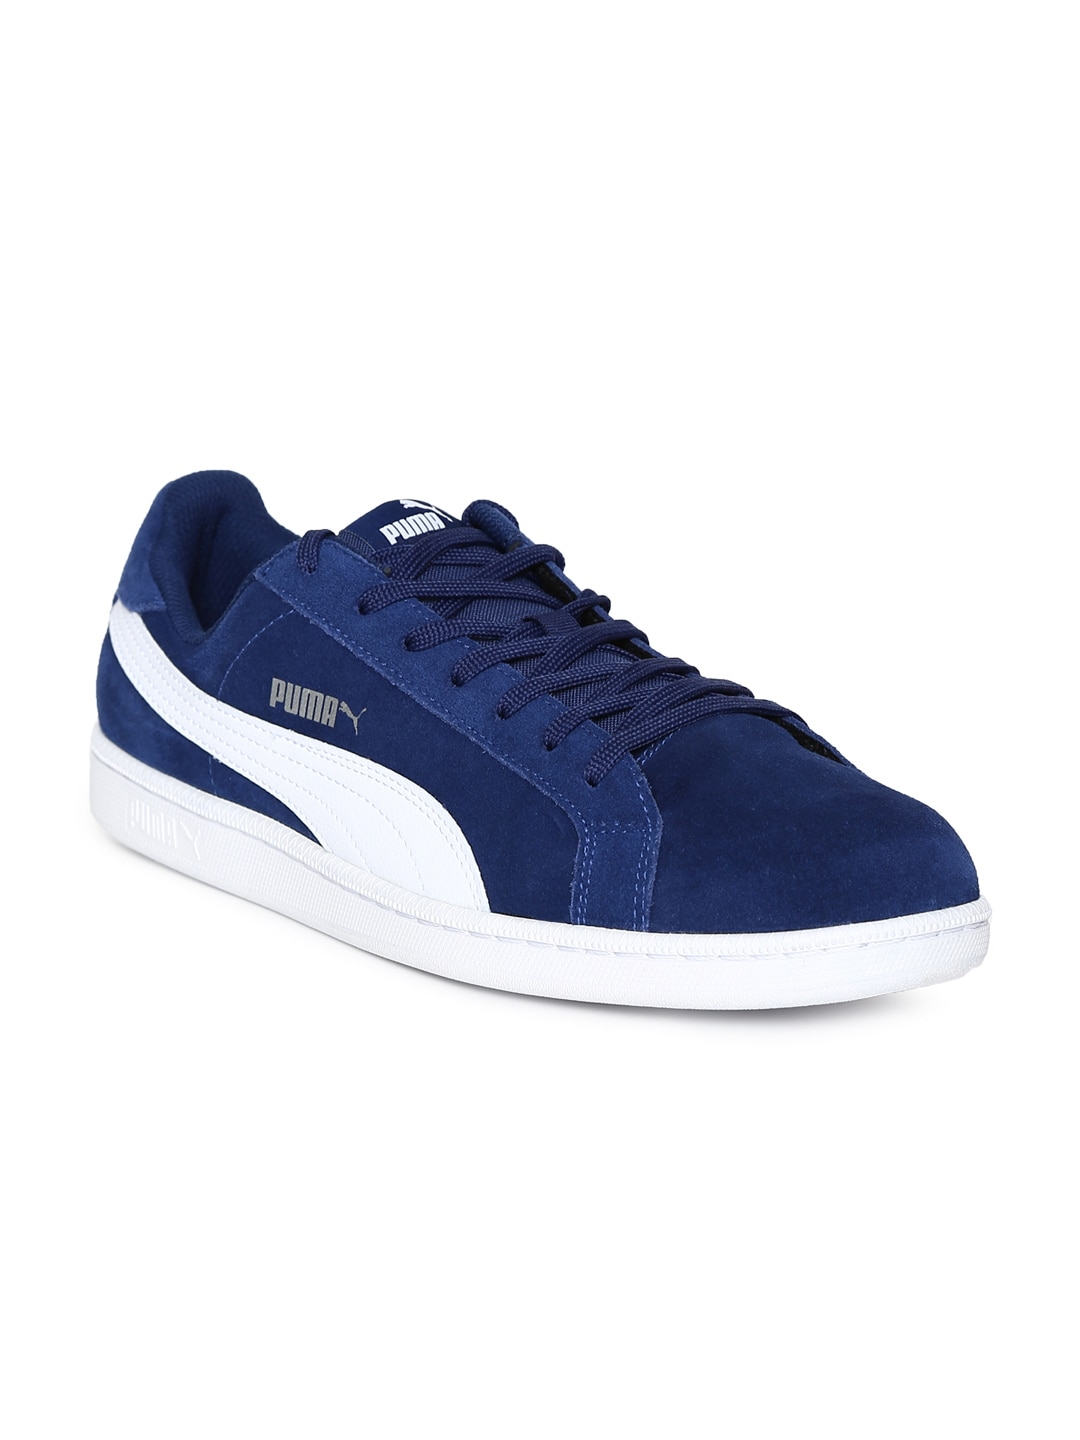 Puma Men Blue Smash SD Sneakers 2f0d8bd27